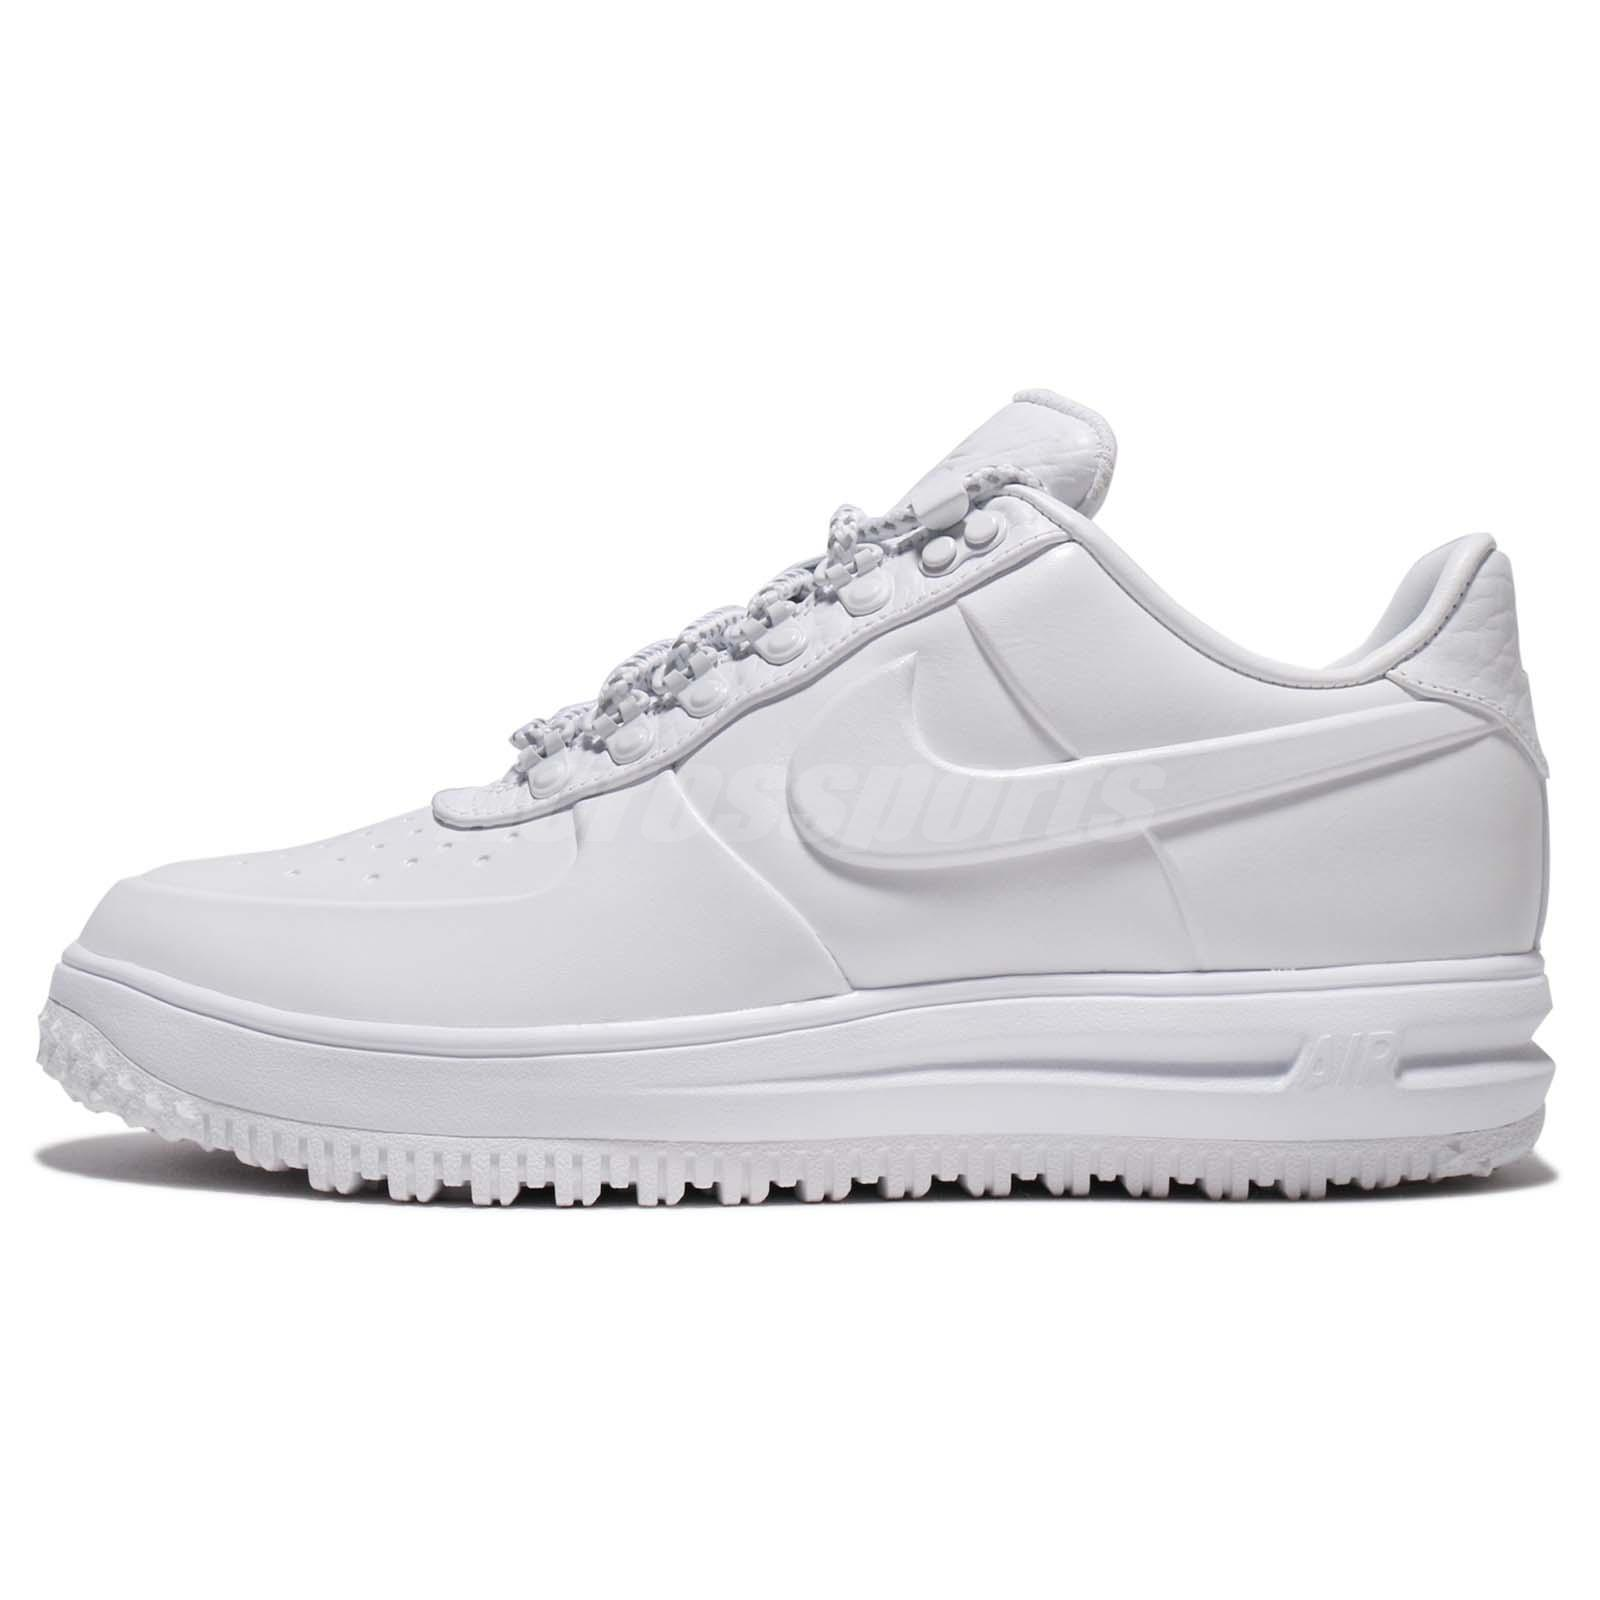 Nike LF1 Low PRM Lunar Force 1 Snow Pack White Men Winter Duckboot AA1124100